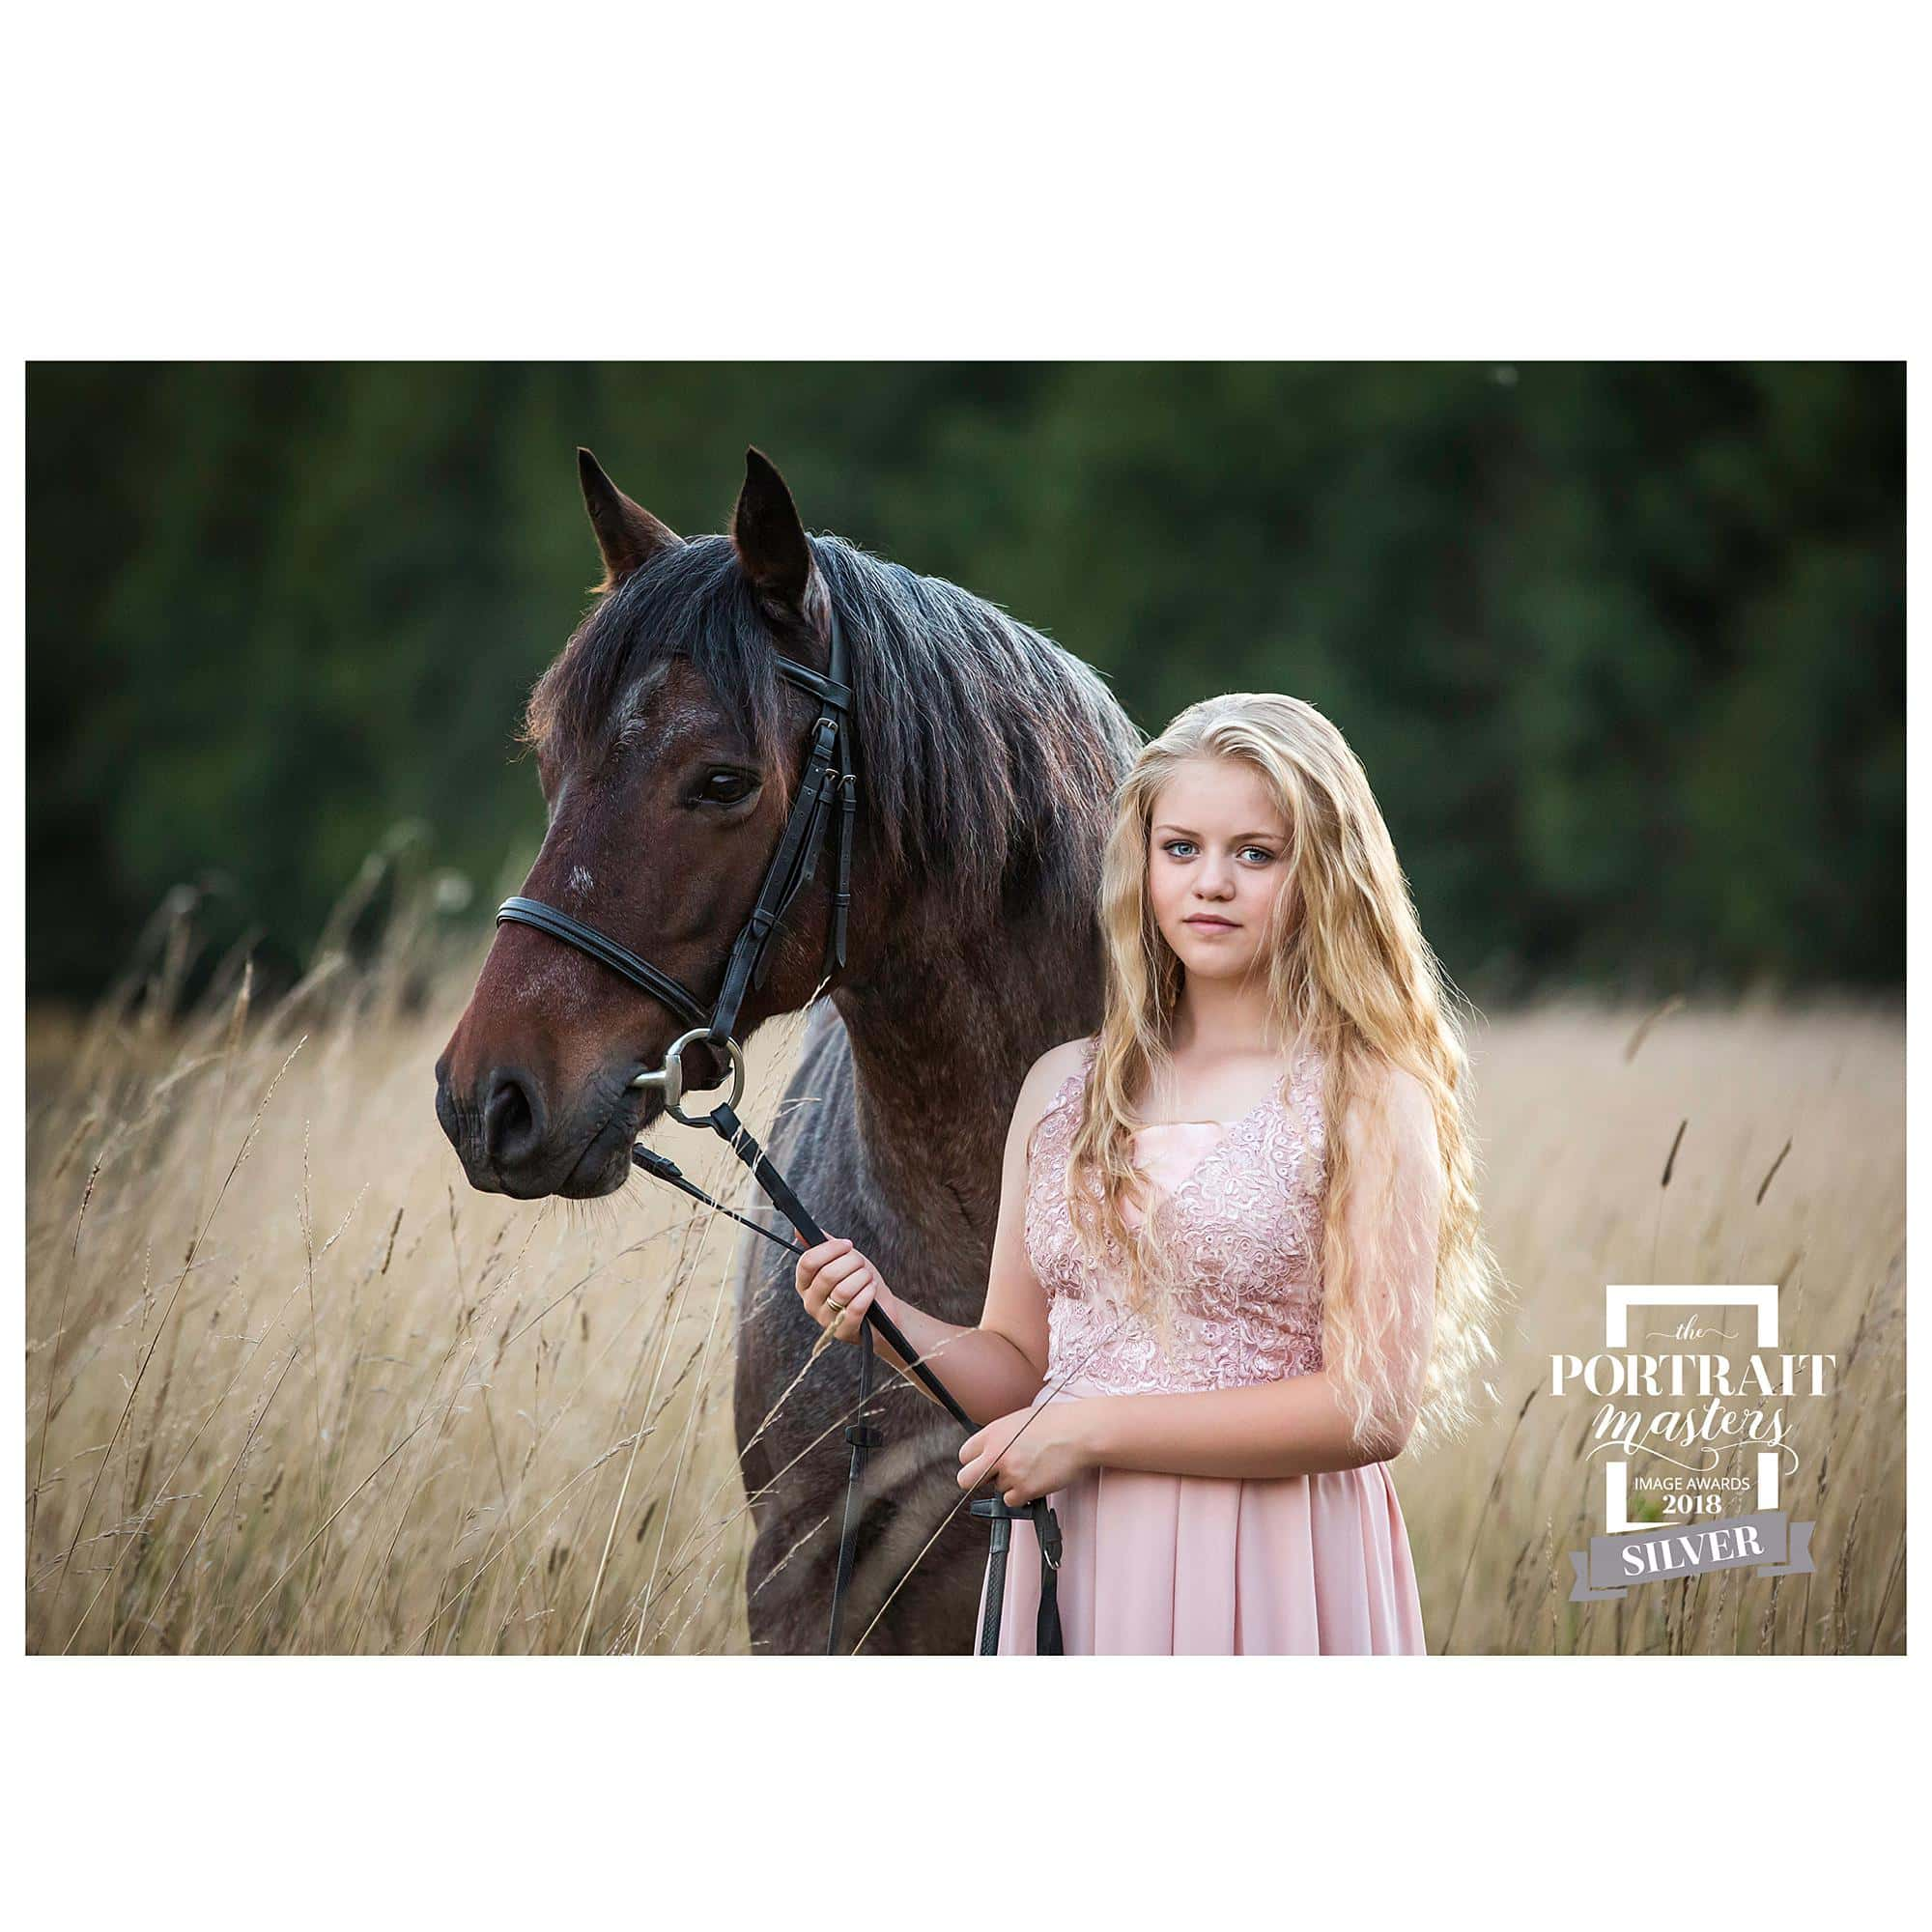 Fine Art Portrait of a Teenage girl in a pink dress with her Roan pony in a field in Stoke By Clare wins a Silver Award from the Portrait Masters